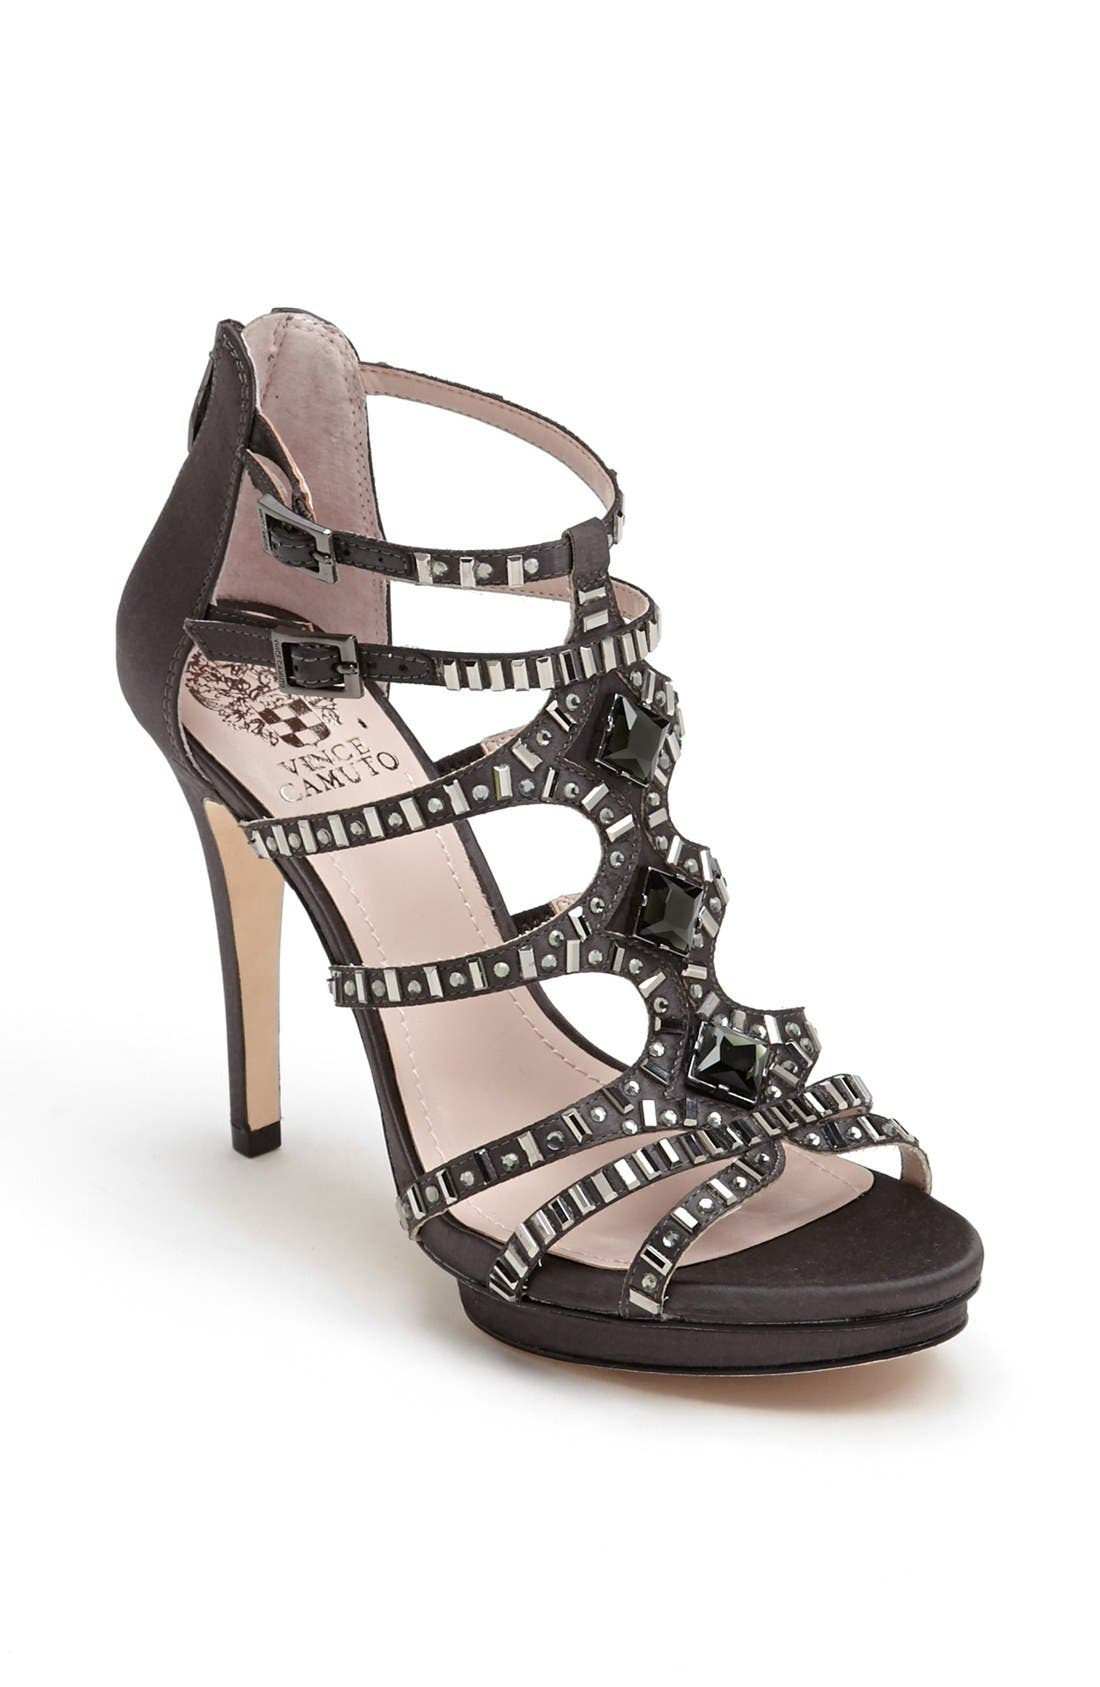 Alternate Image 1 Selected - Vince Camuto 'Crista' Sandal